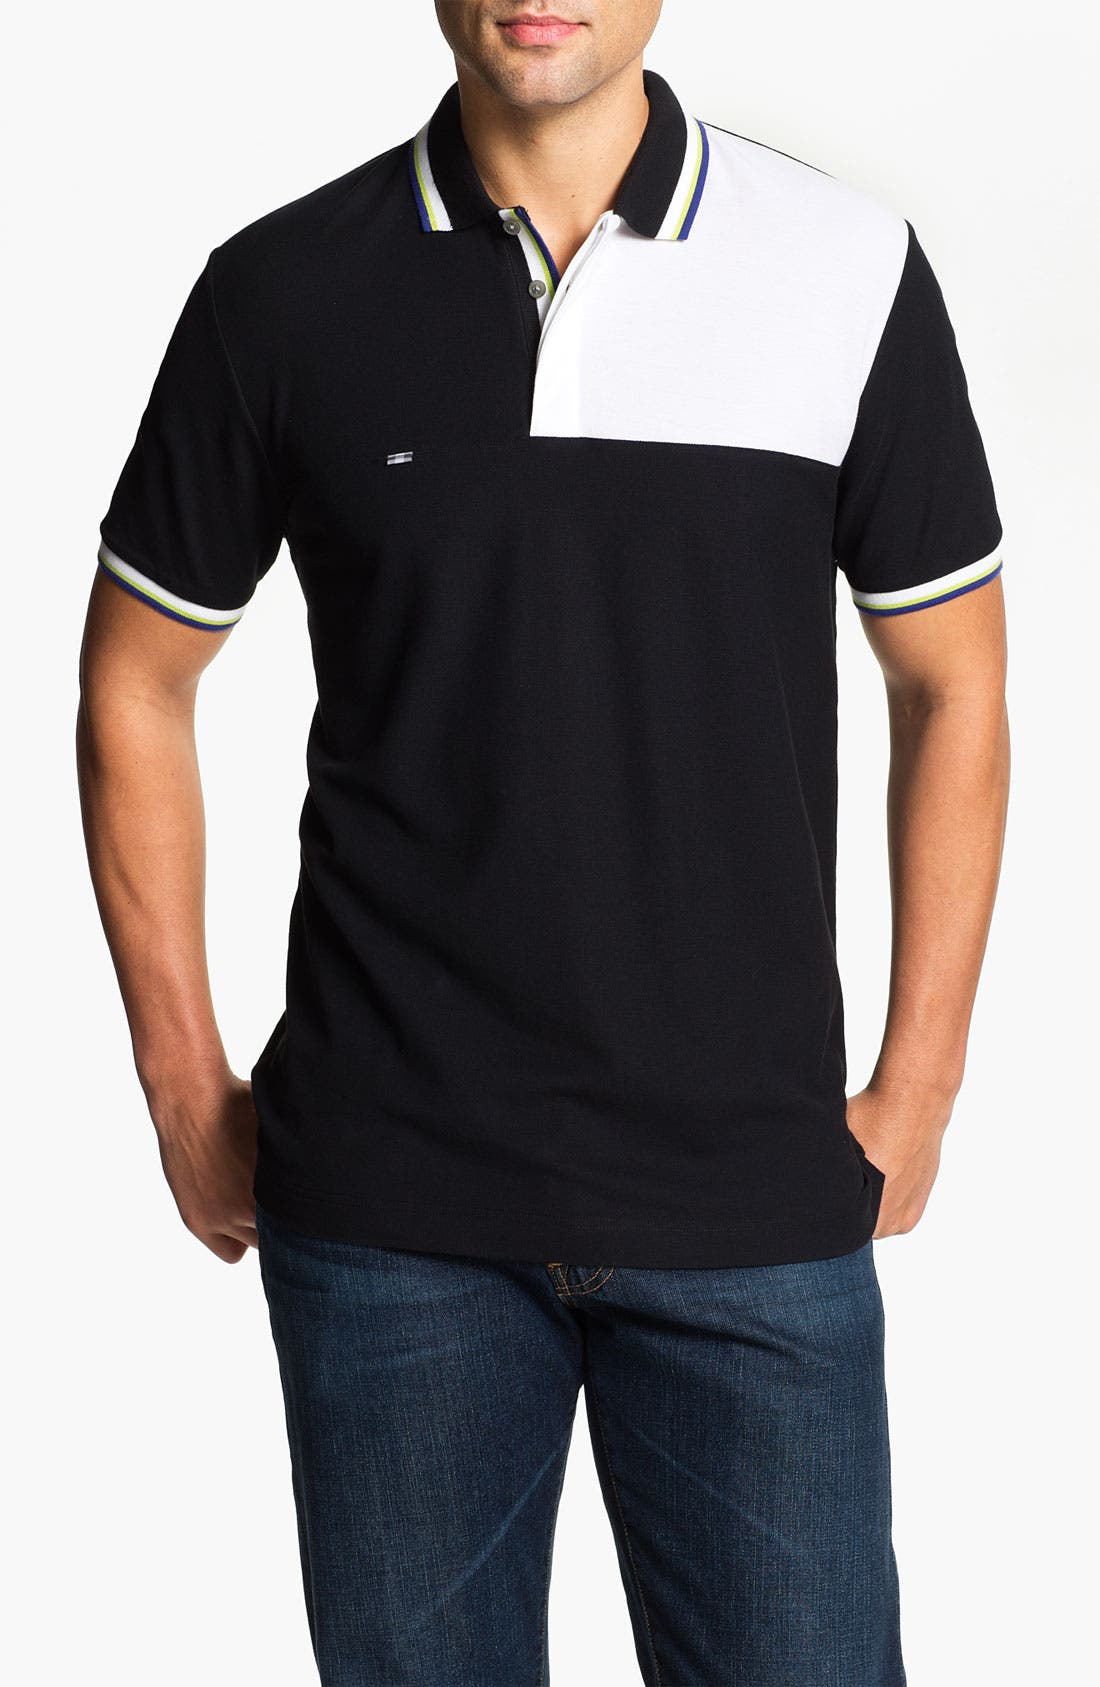 Alternate Image 1 Selected - Aquascutum Golf Polo